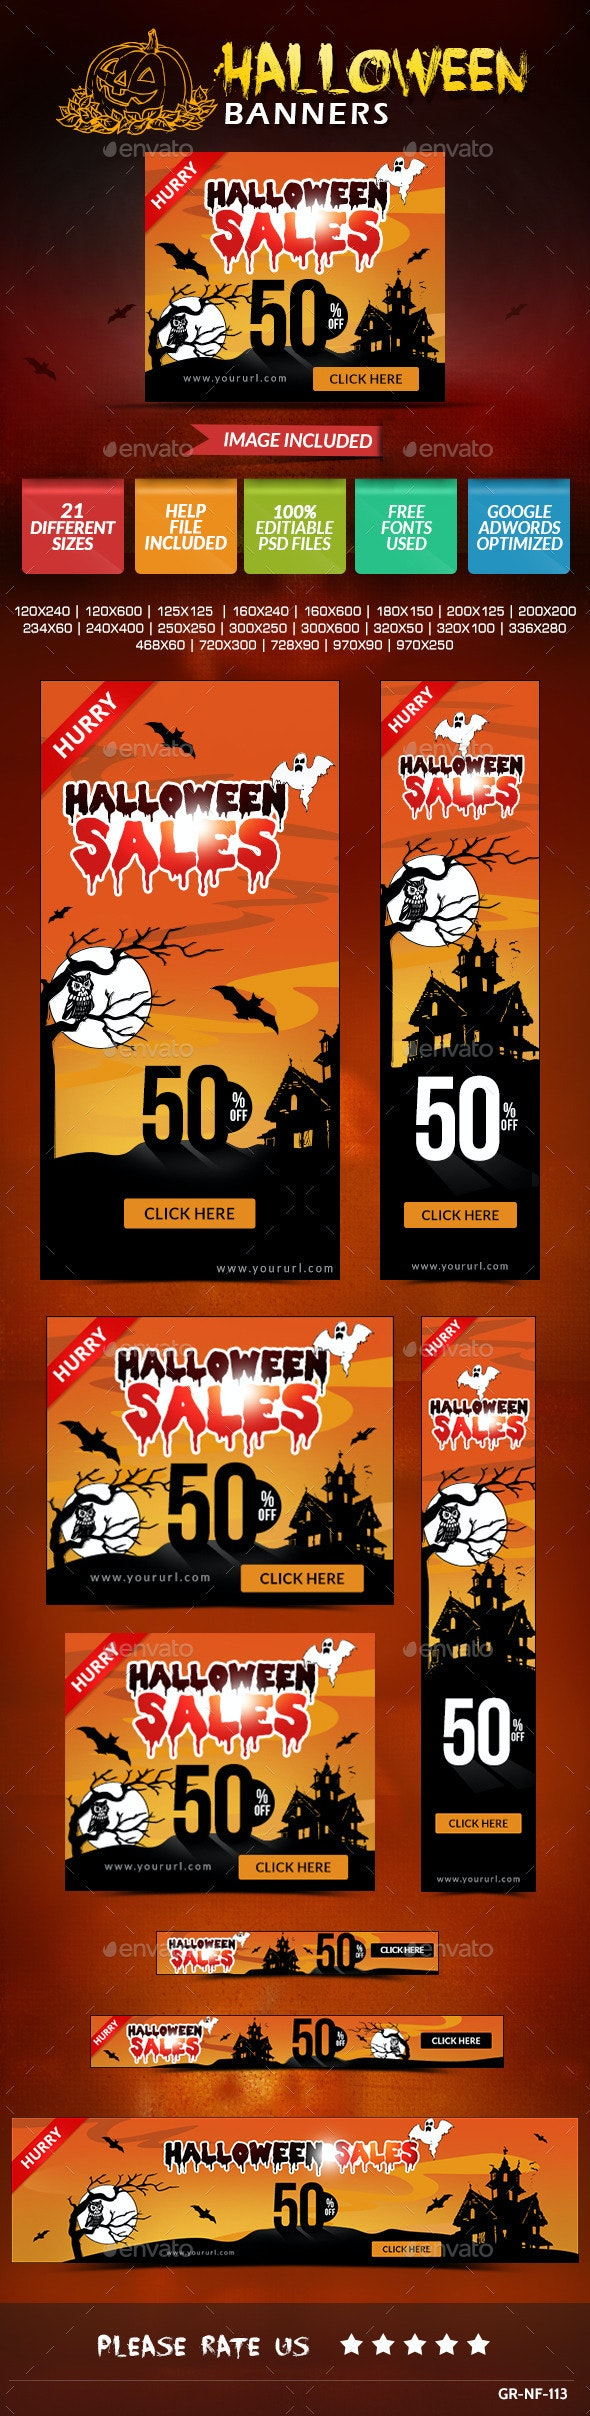 Halloween Web Banner Design Set - Banners & Ads Web Elements